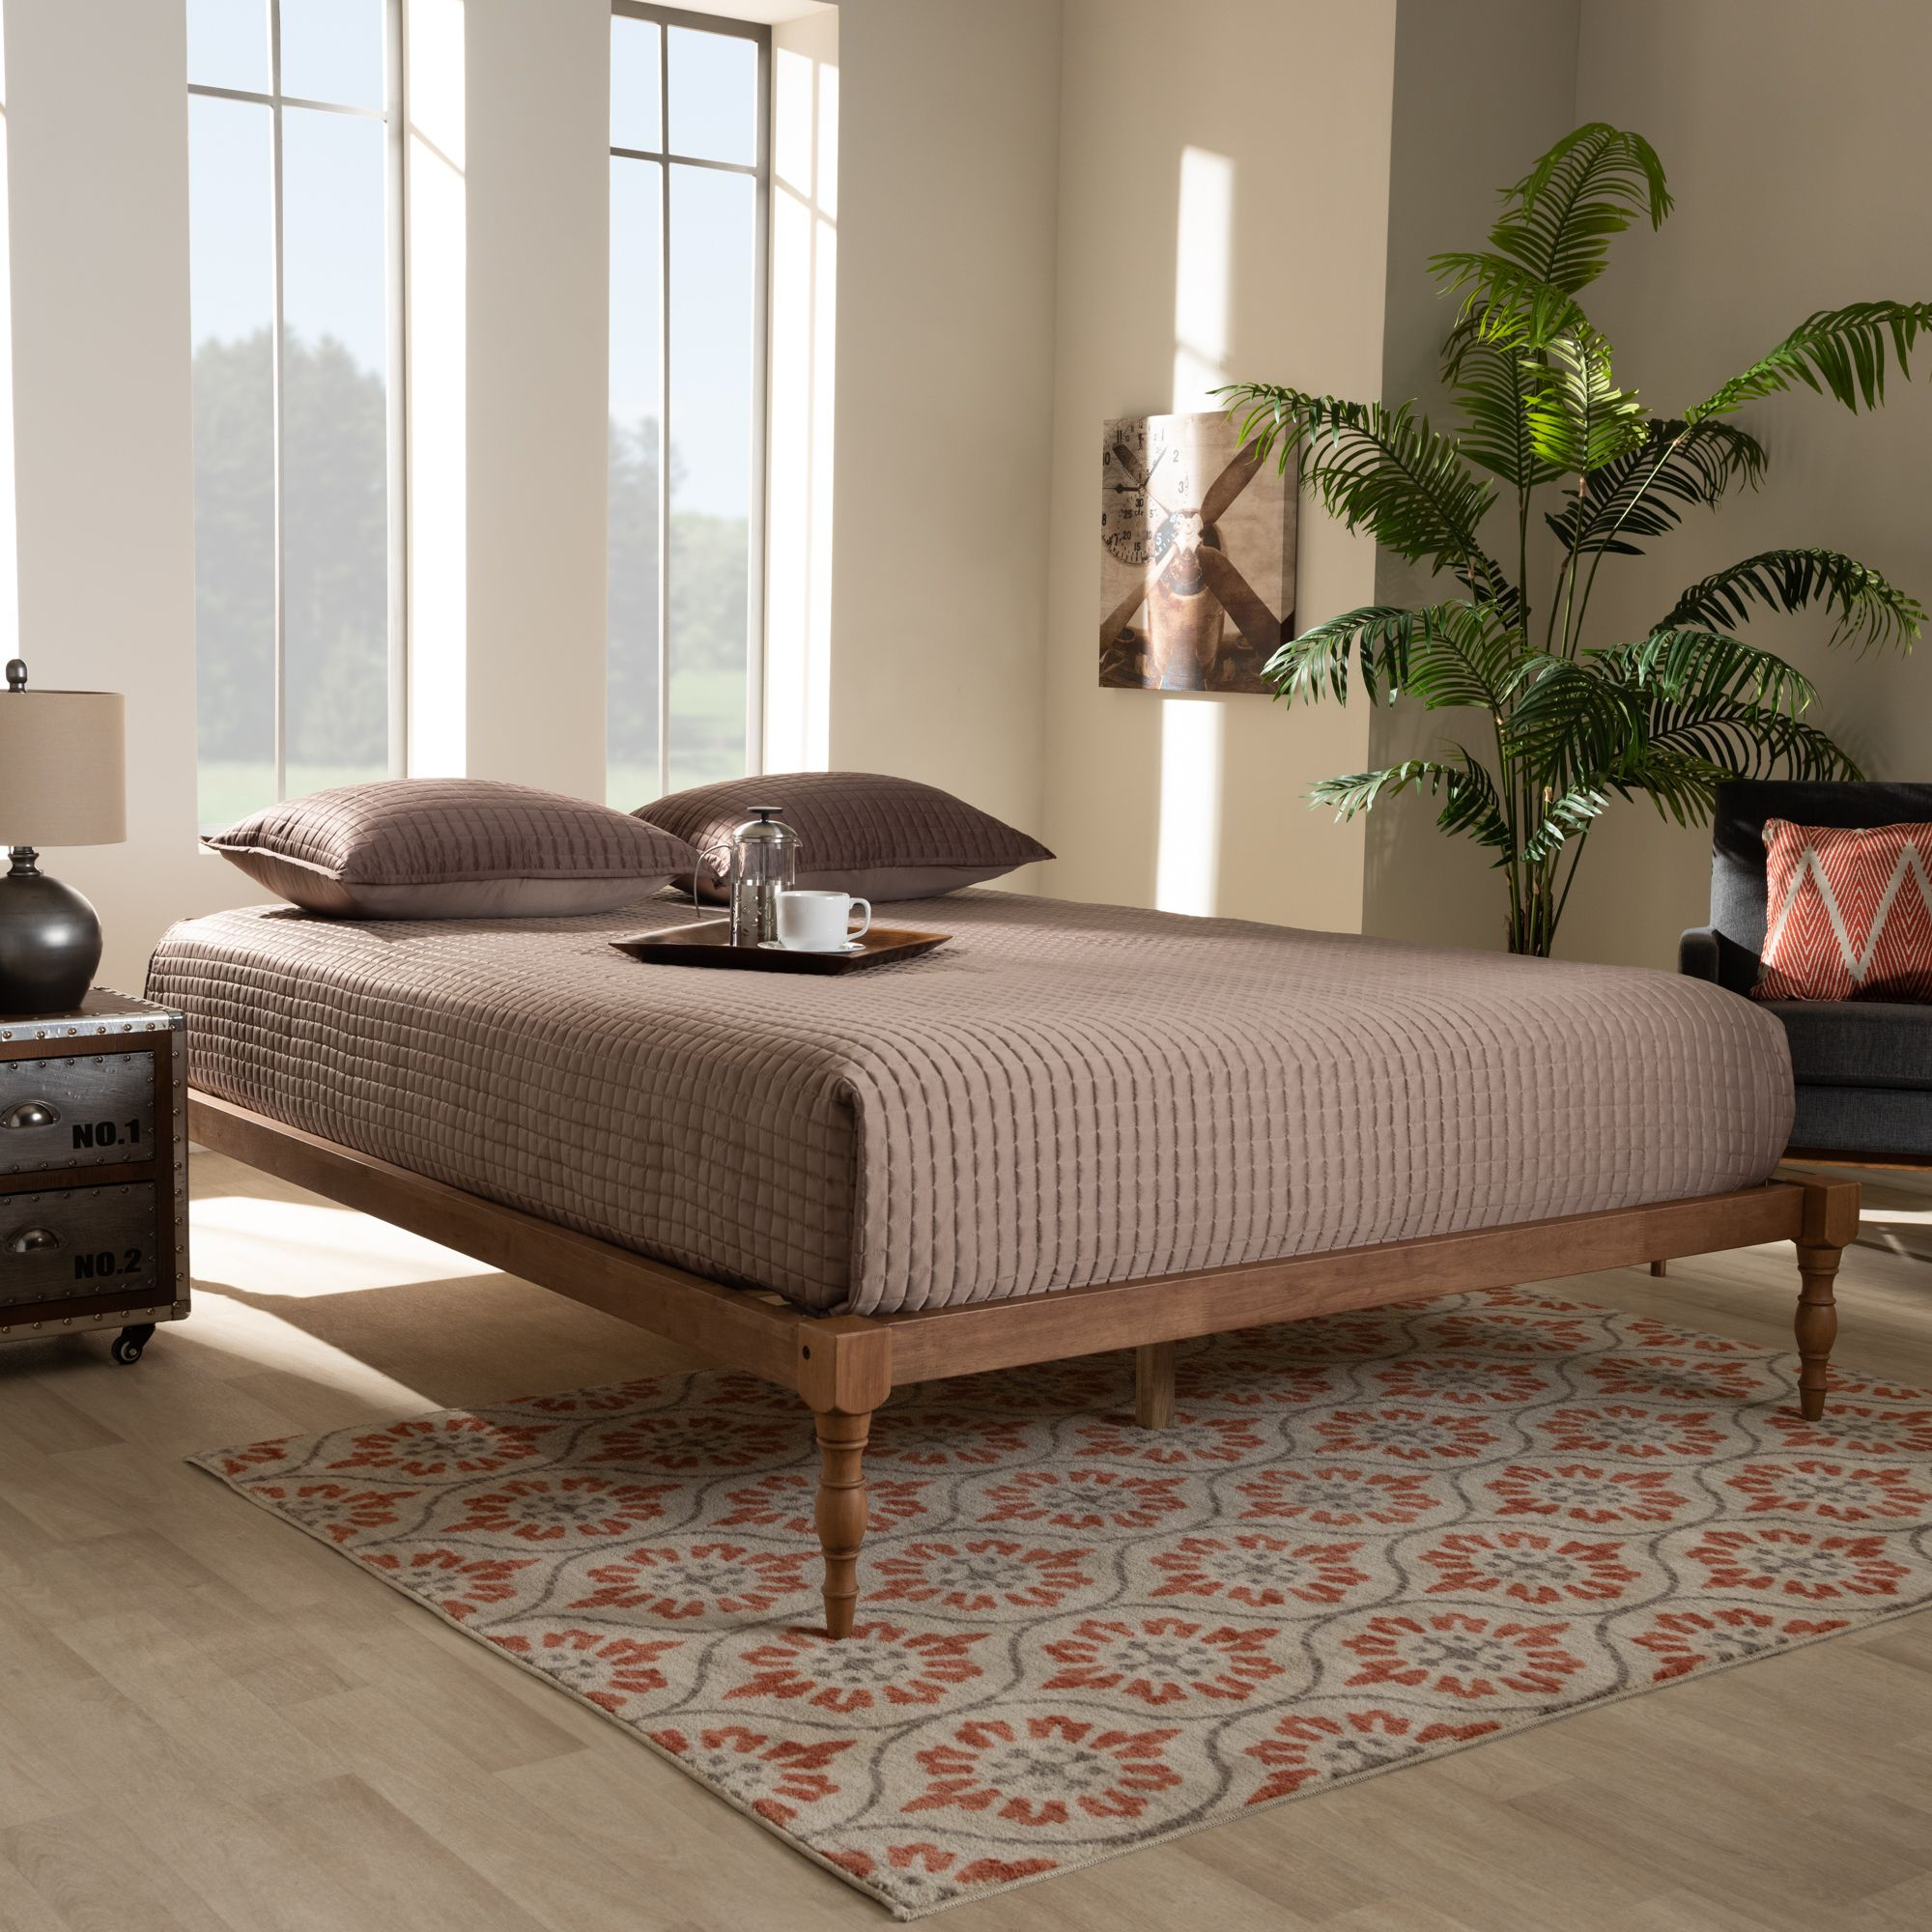 Home In 2020 With Images Queen Platform Bed Frame Platform Bed Frame Wood Platform Bed